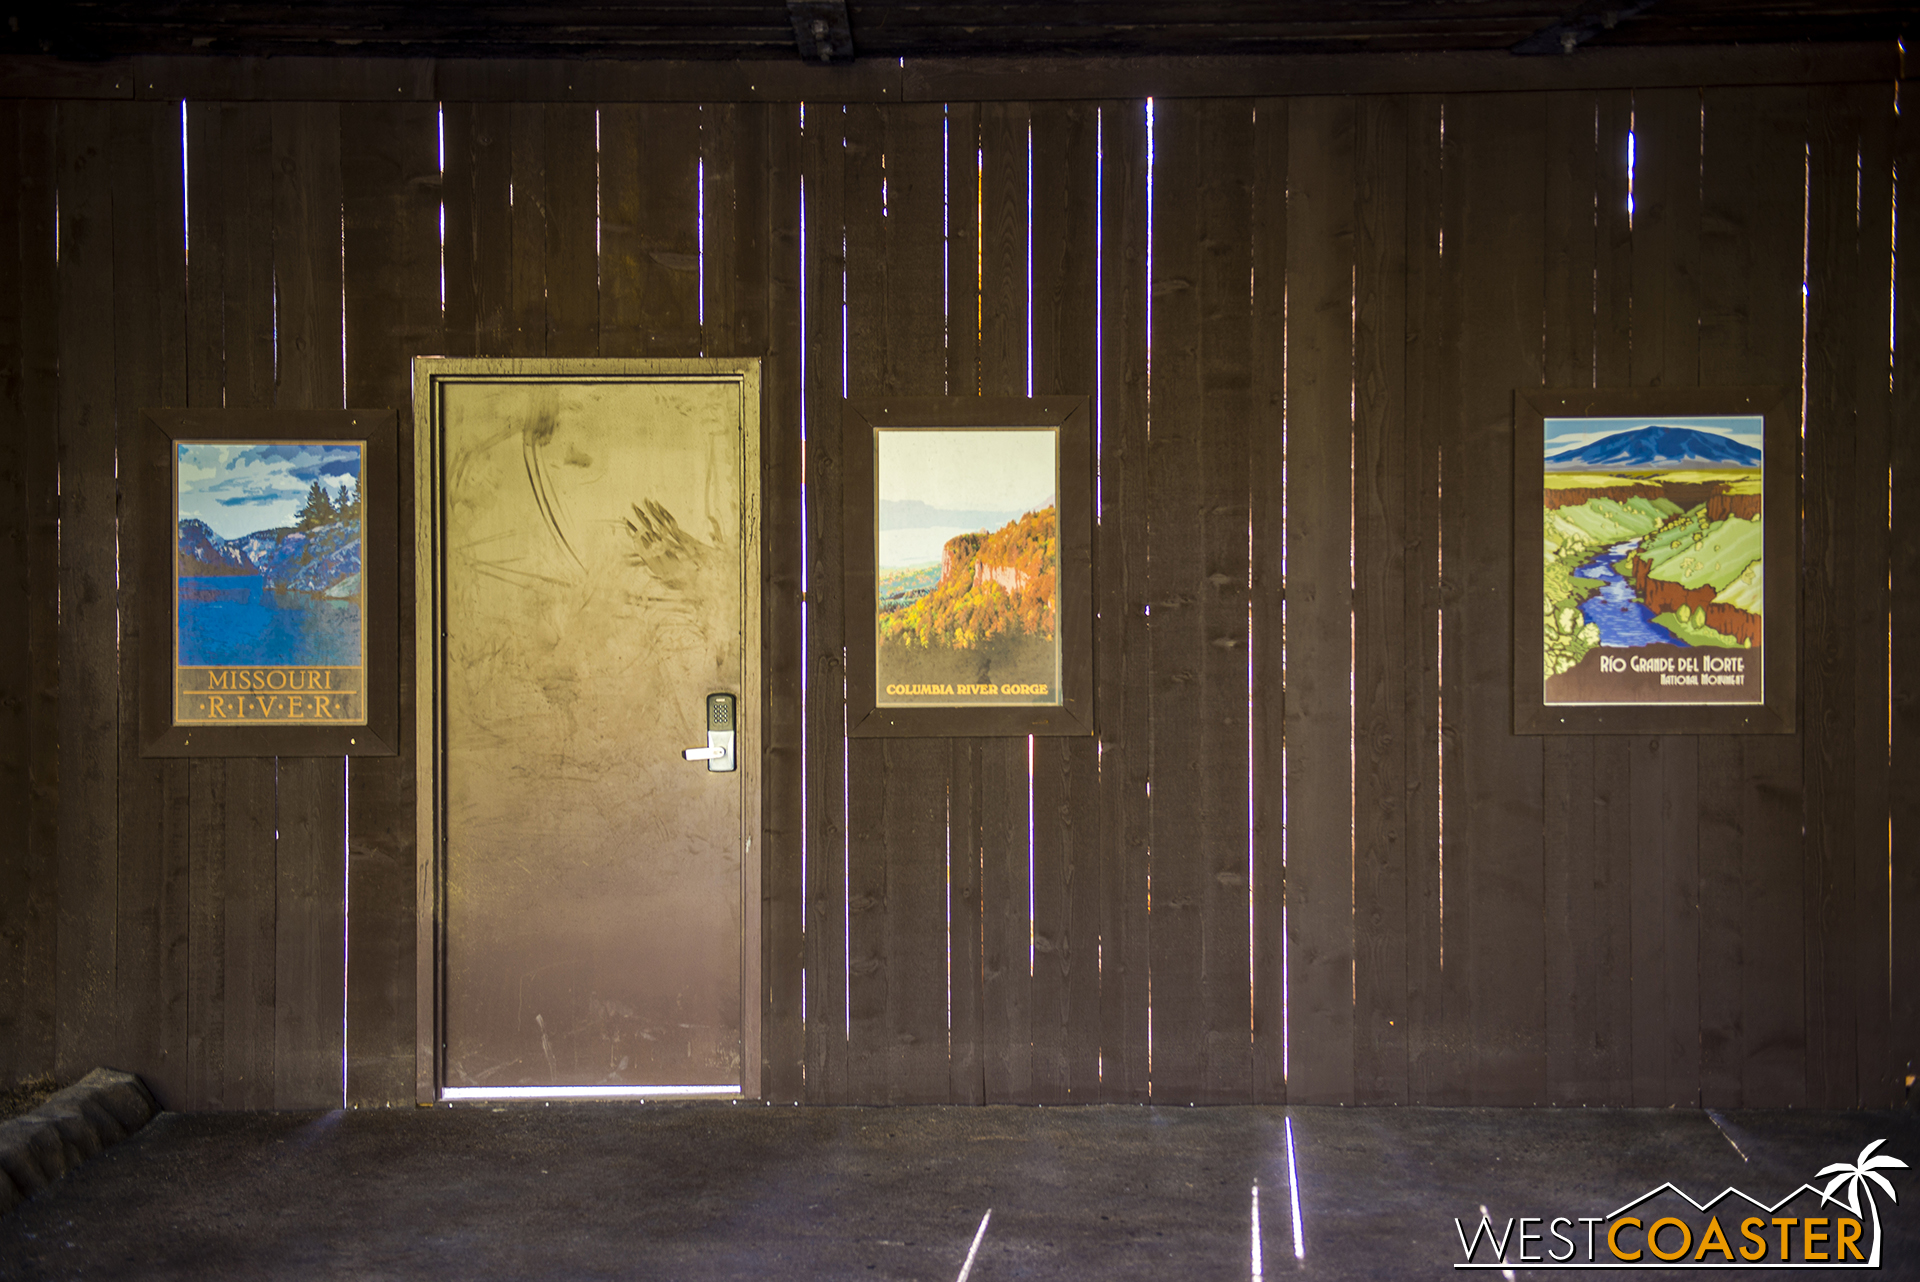 The work walls showcase the new waterfalls that are part of the Disneyland Railroad passage along the Rivers of America.